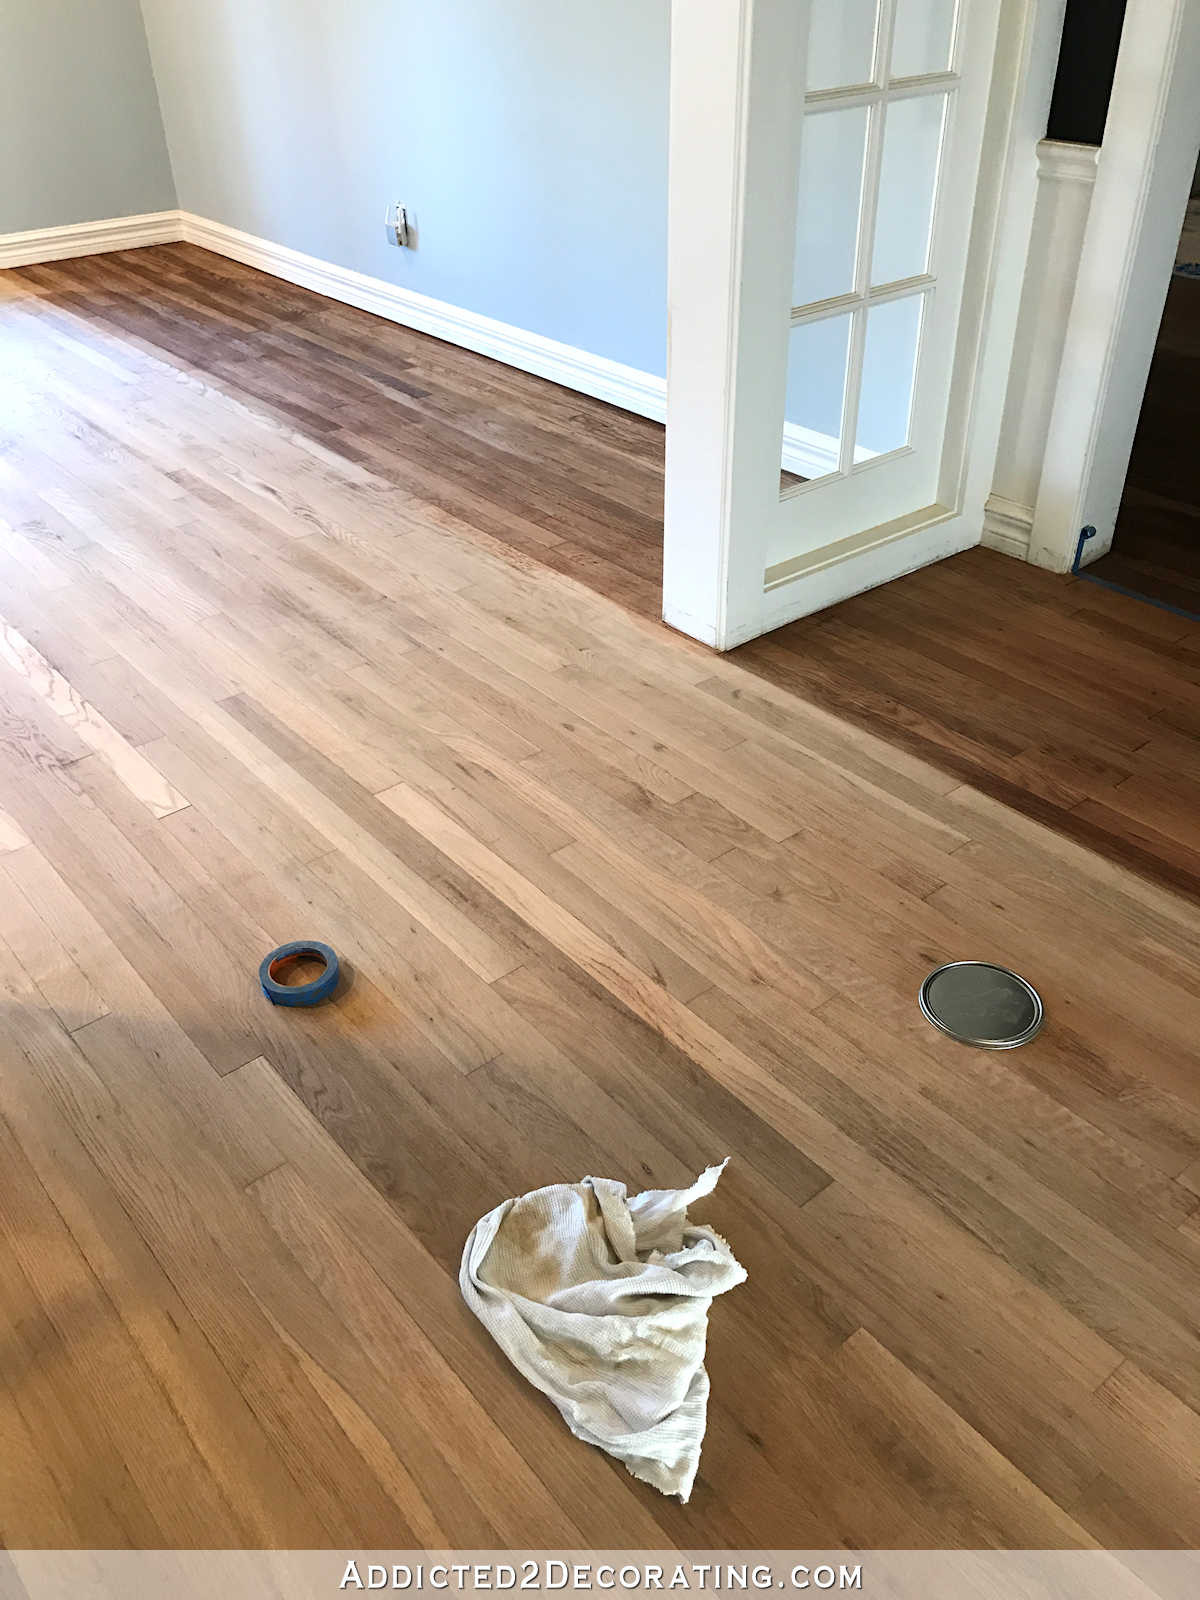 should i glue my hardwood floor of adventures in staining my red oak hardwood floors products process within staining red oak hardwood floors 3 entryway and music room